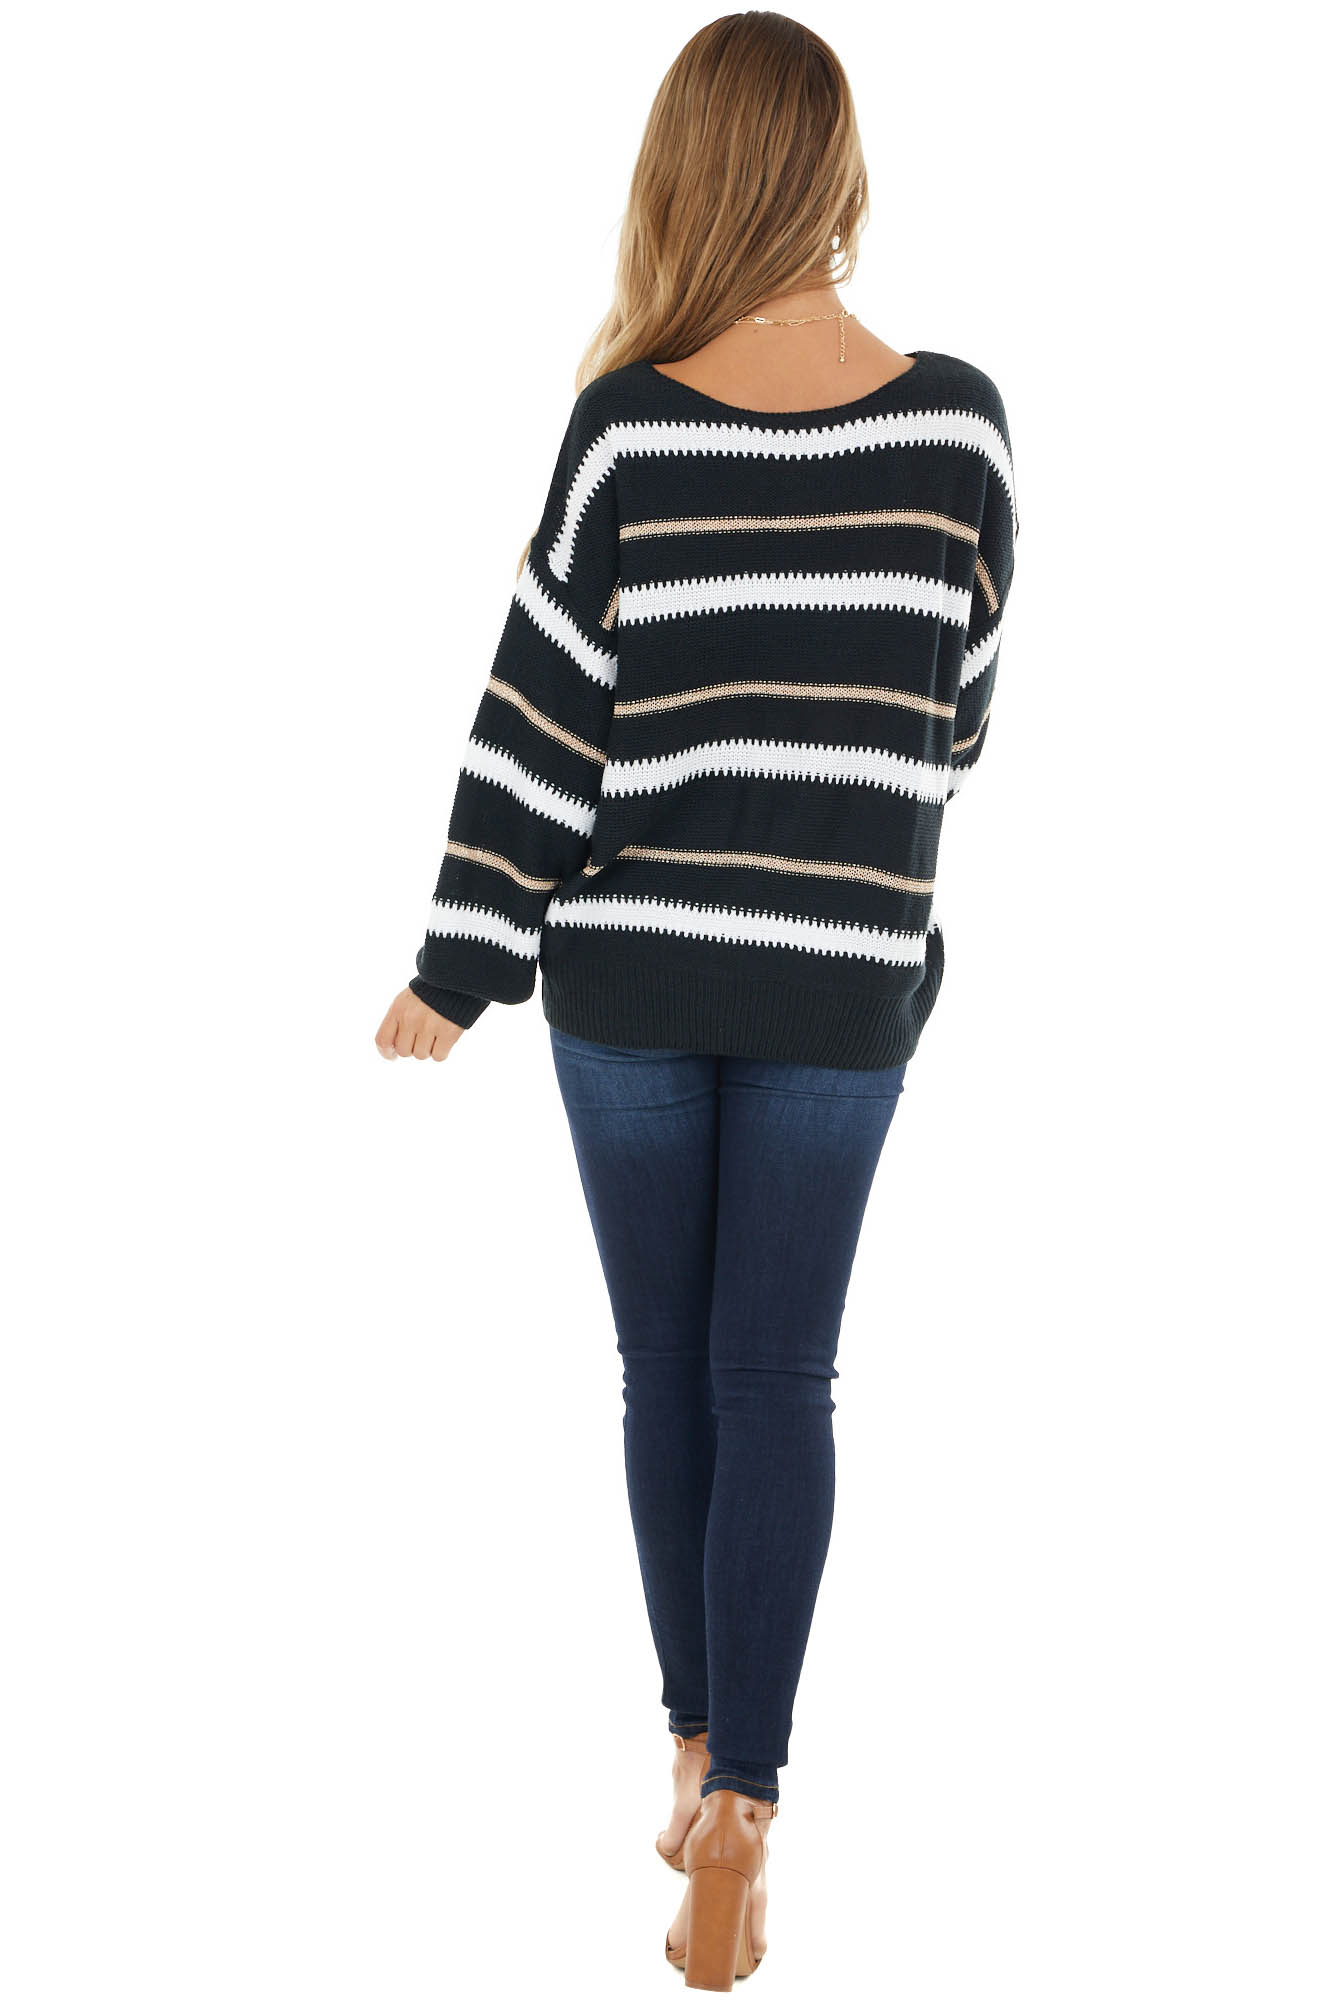 Black Stripe Print Knit Sweater with White and Rose Gold